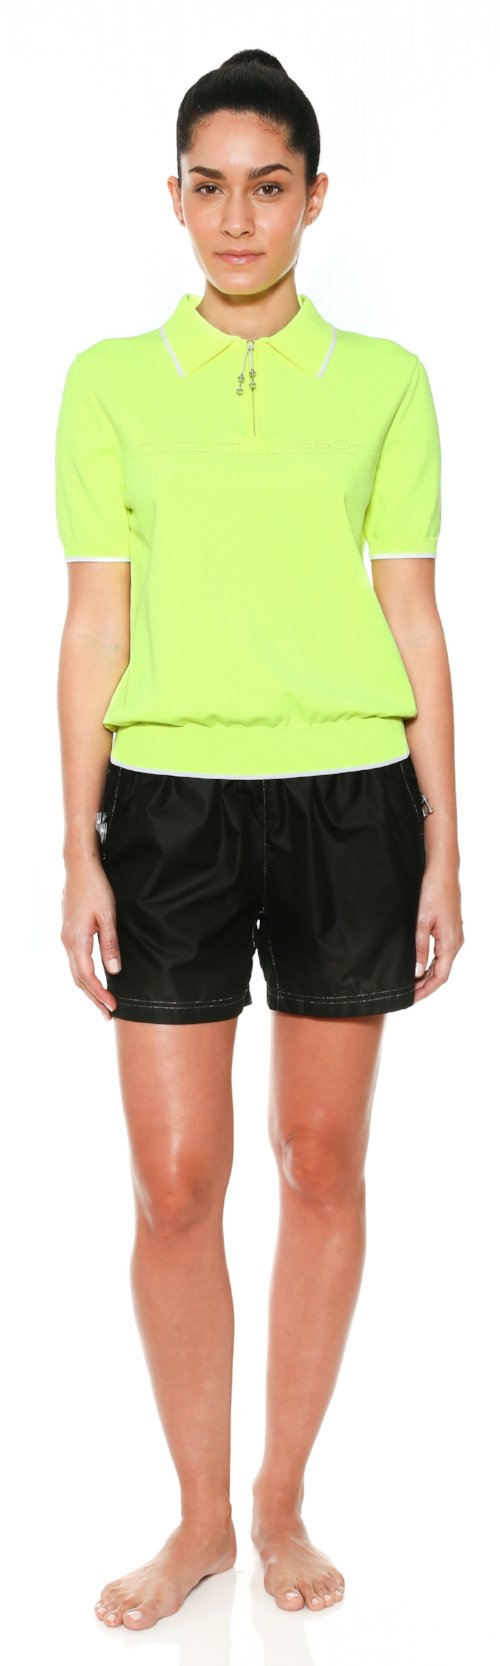 top polo logo knit neon adam selman activewear work out workingout